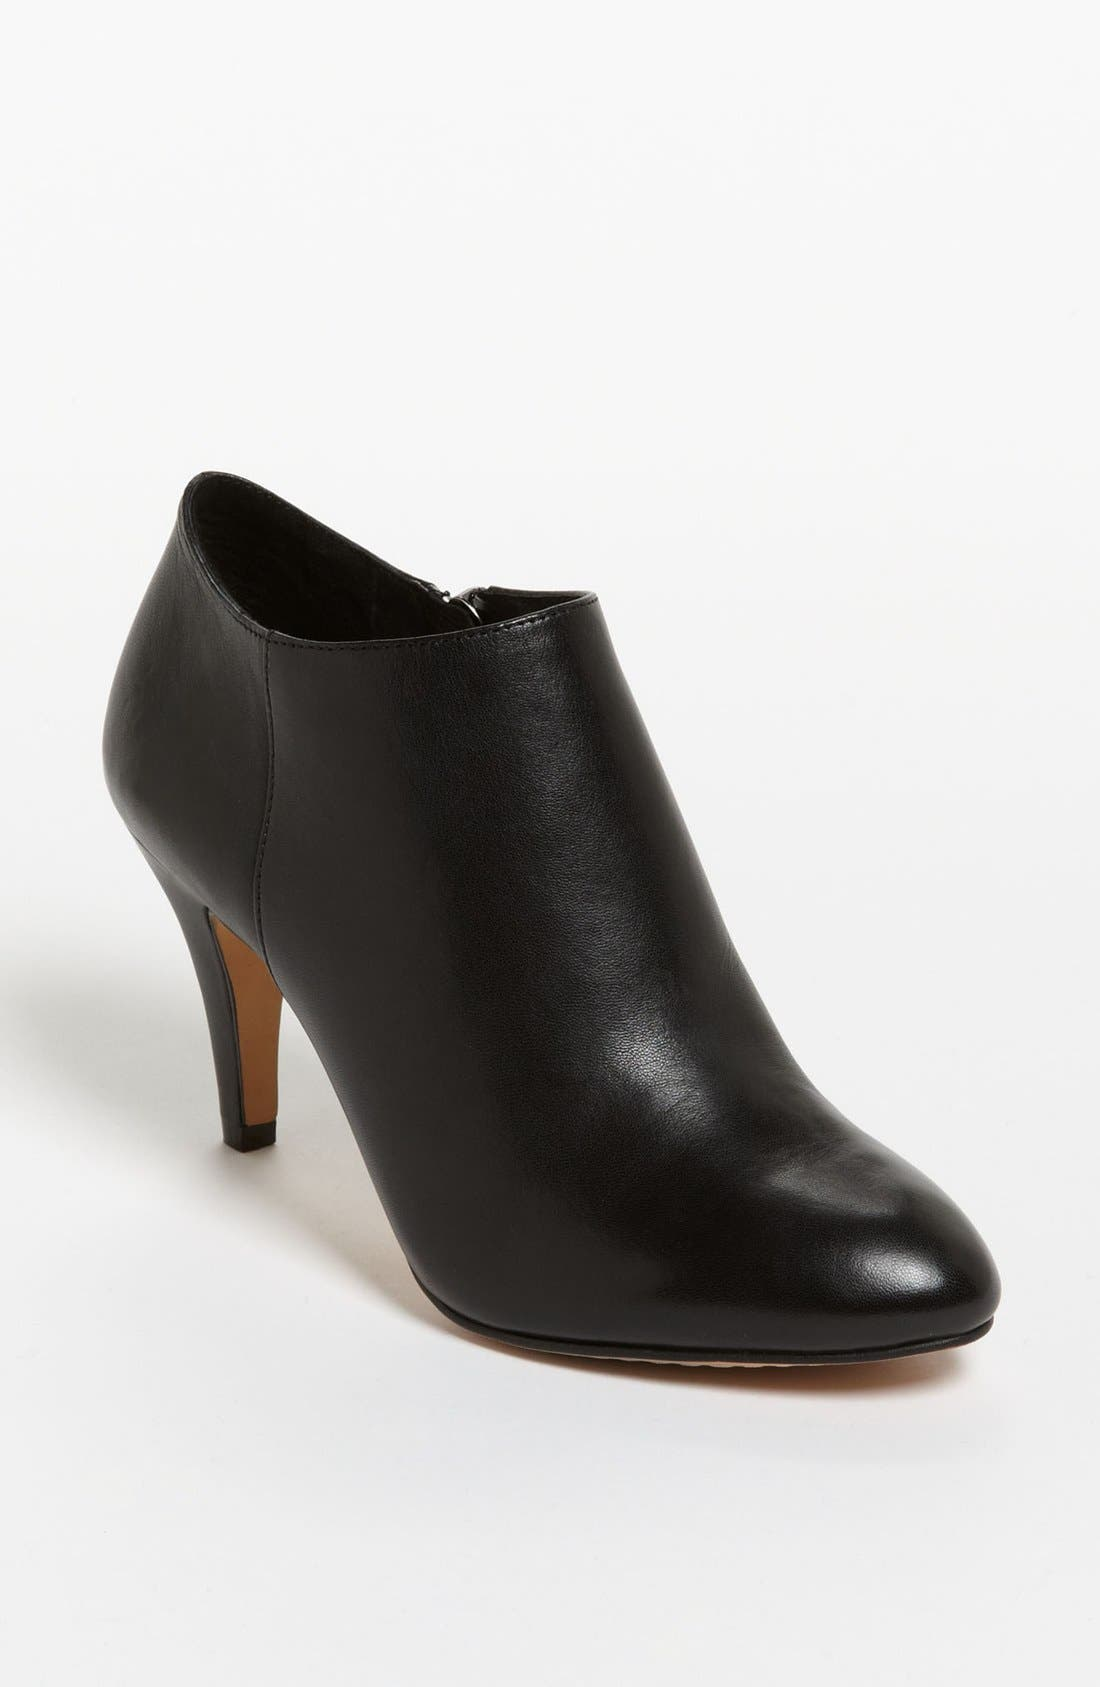 Main Image - Vince Camuto 'Vive' Bootie (Nordstrom Exclusive)